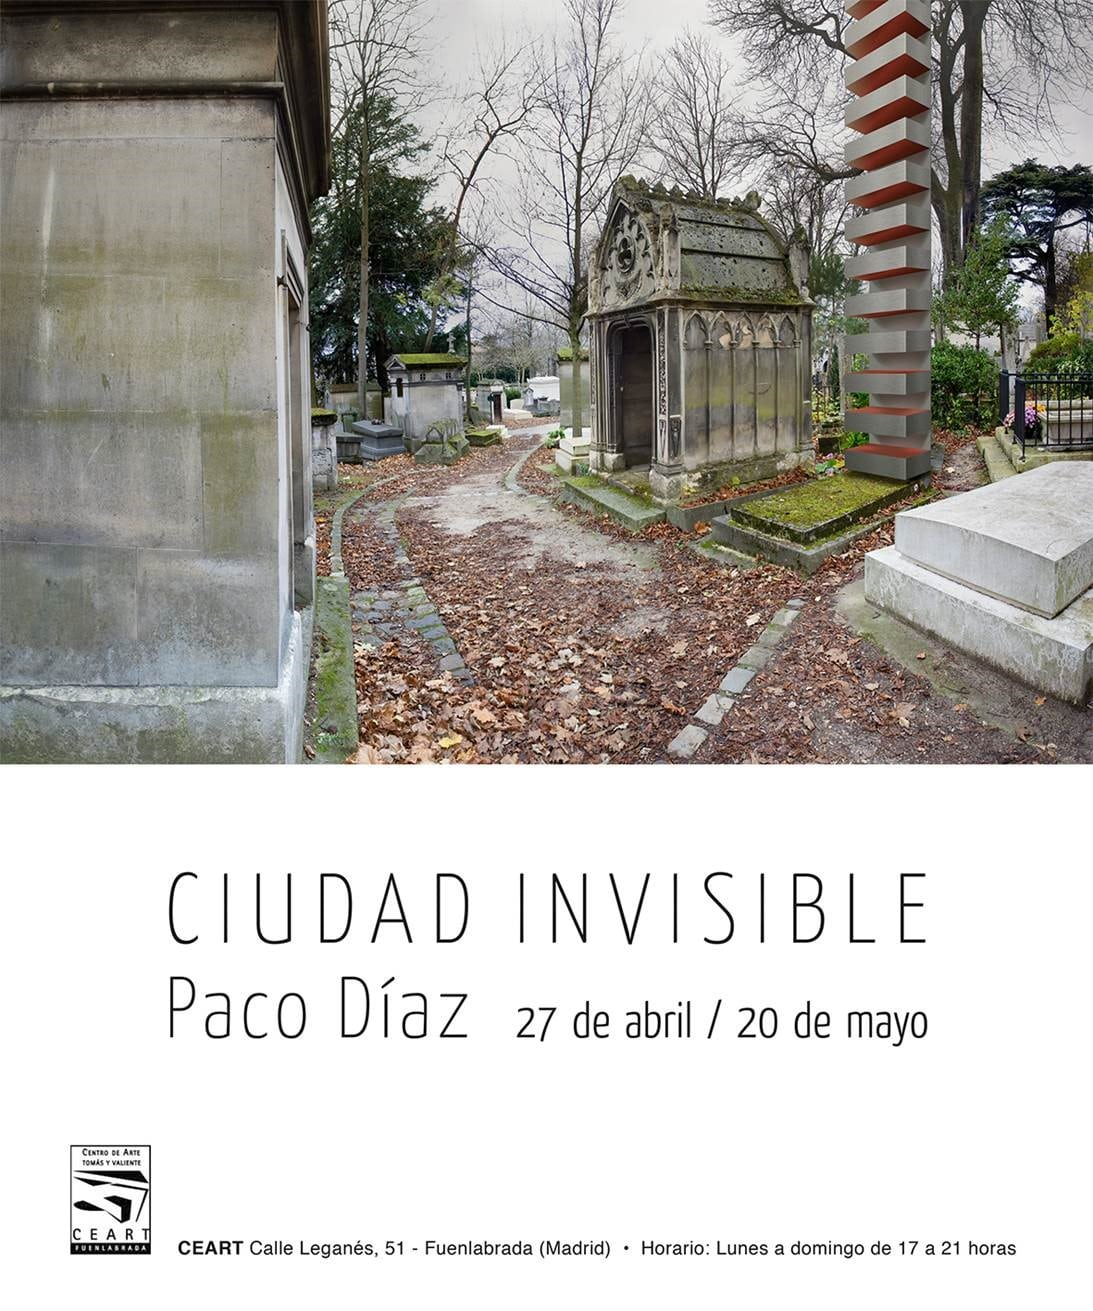 image with information about the invisible city exhibition of Paco Díaz